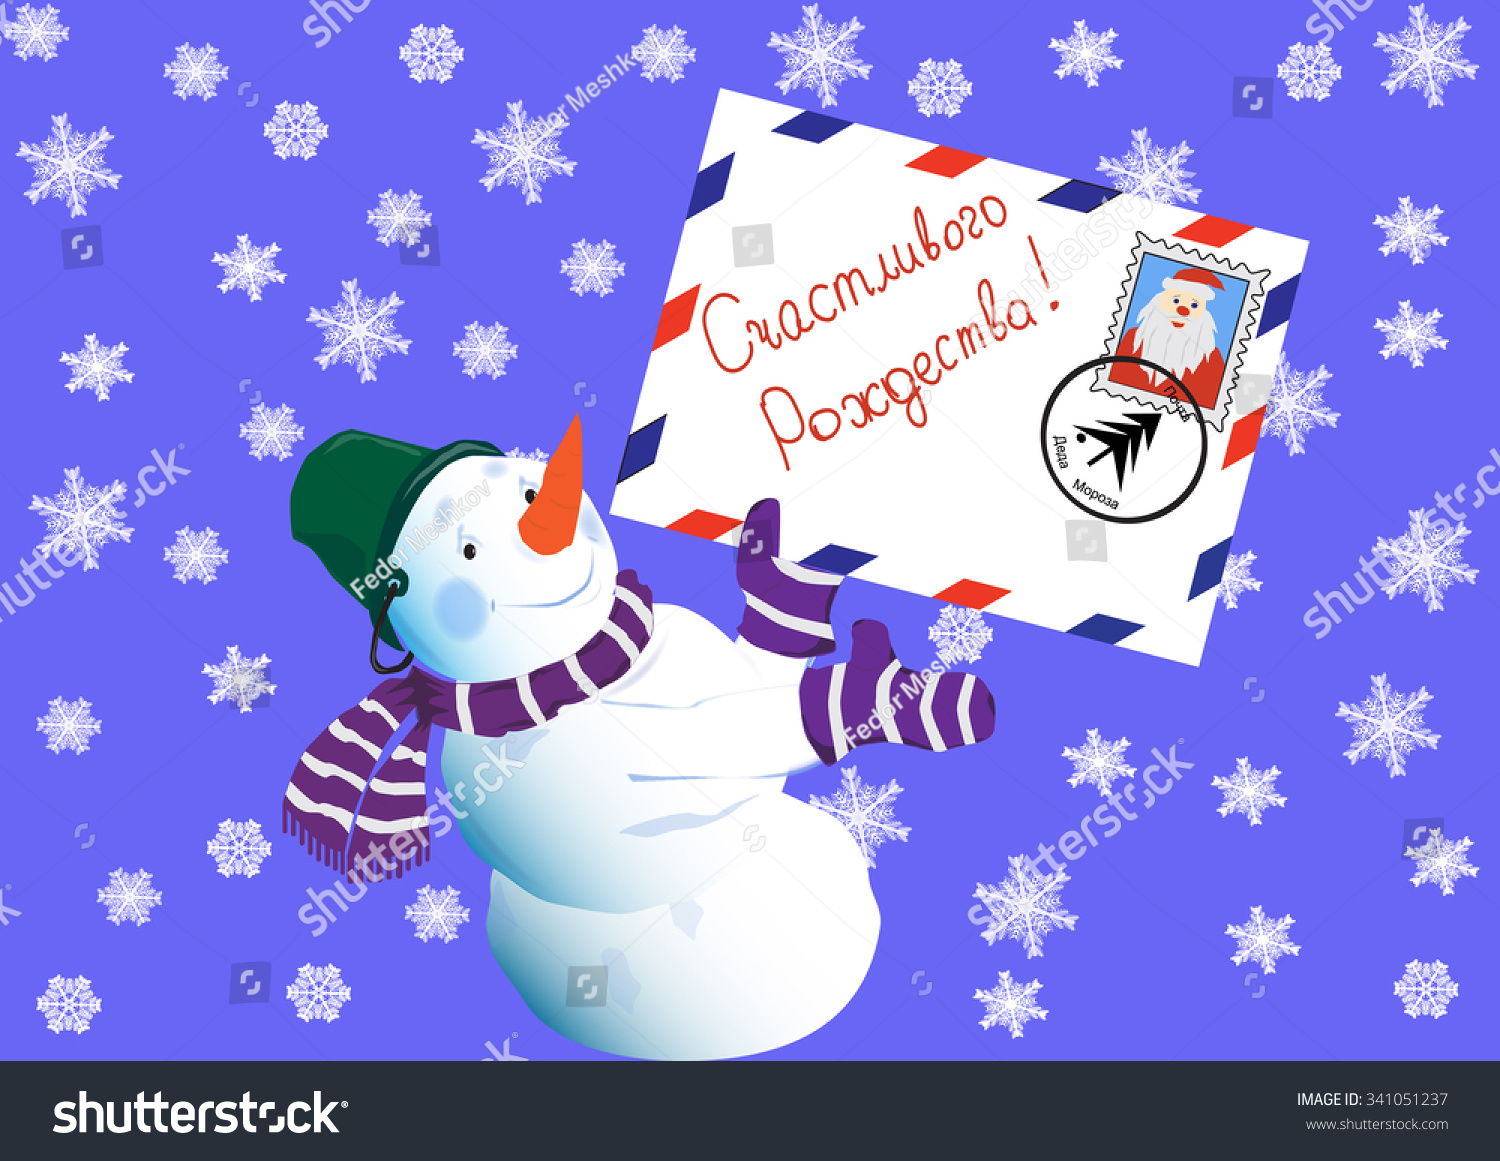 Merry Christmas In Russian.Snowman Wishes Merry Christmas Russian Language Stock Vector